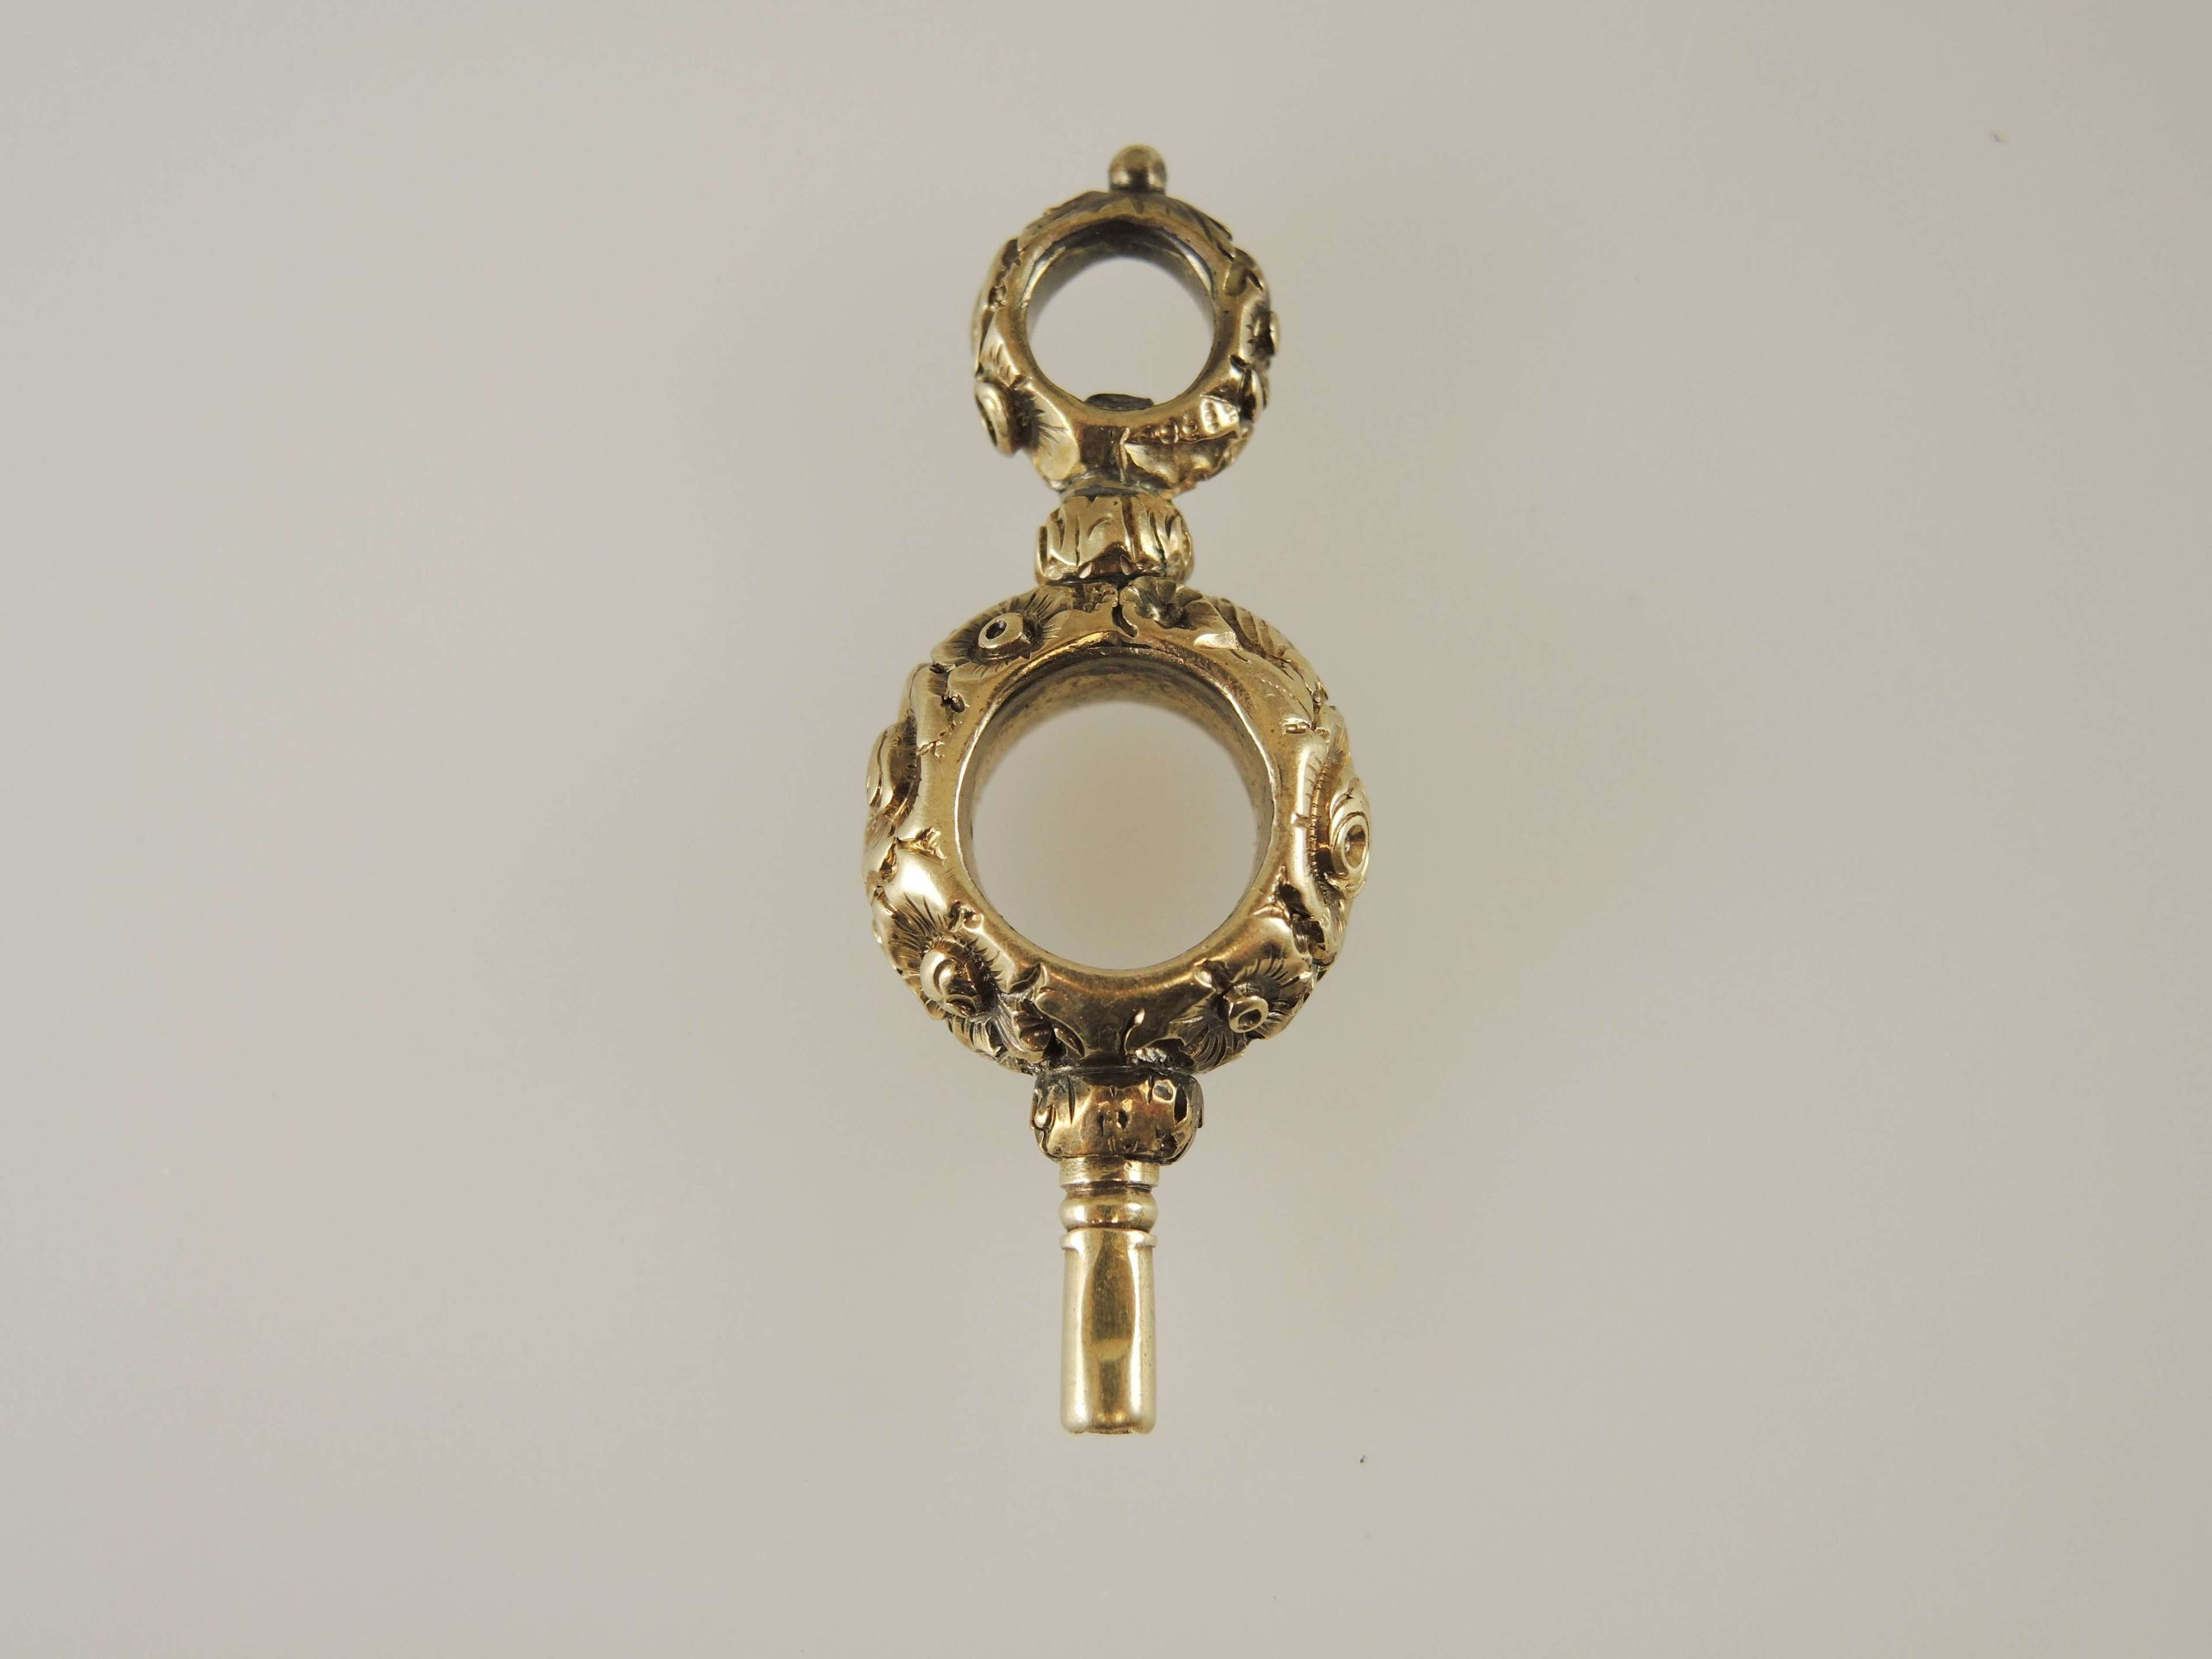 15K gold antique pocket watch key. C1850